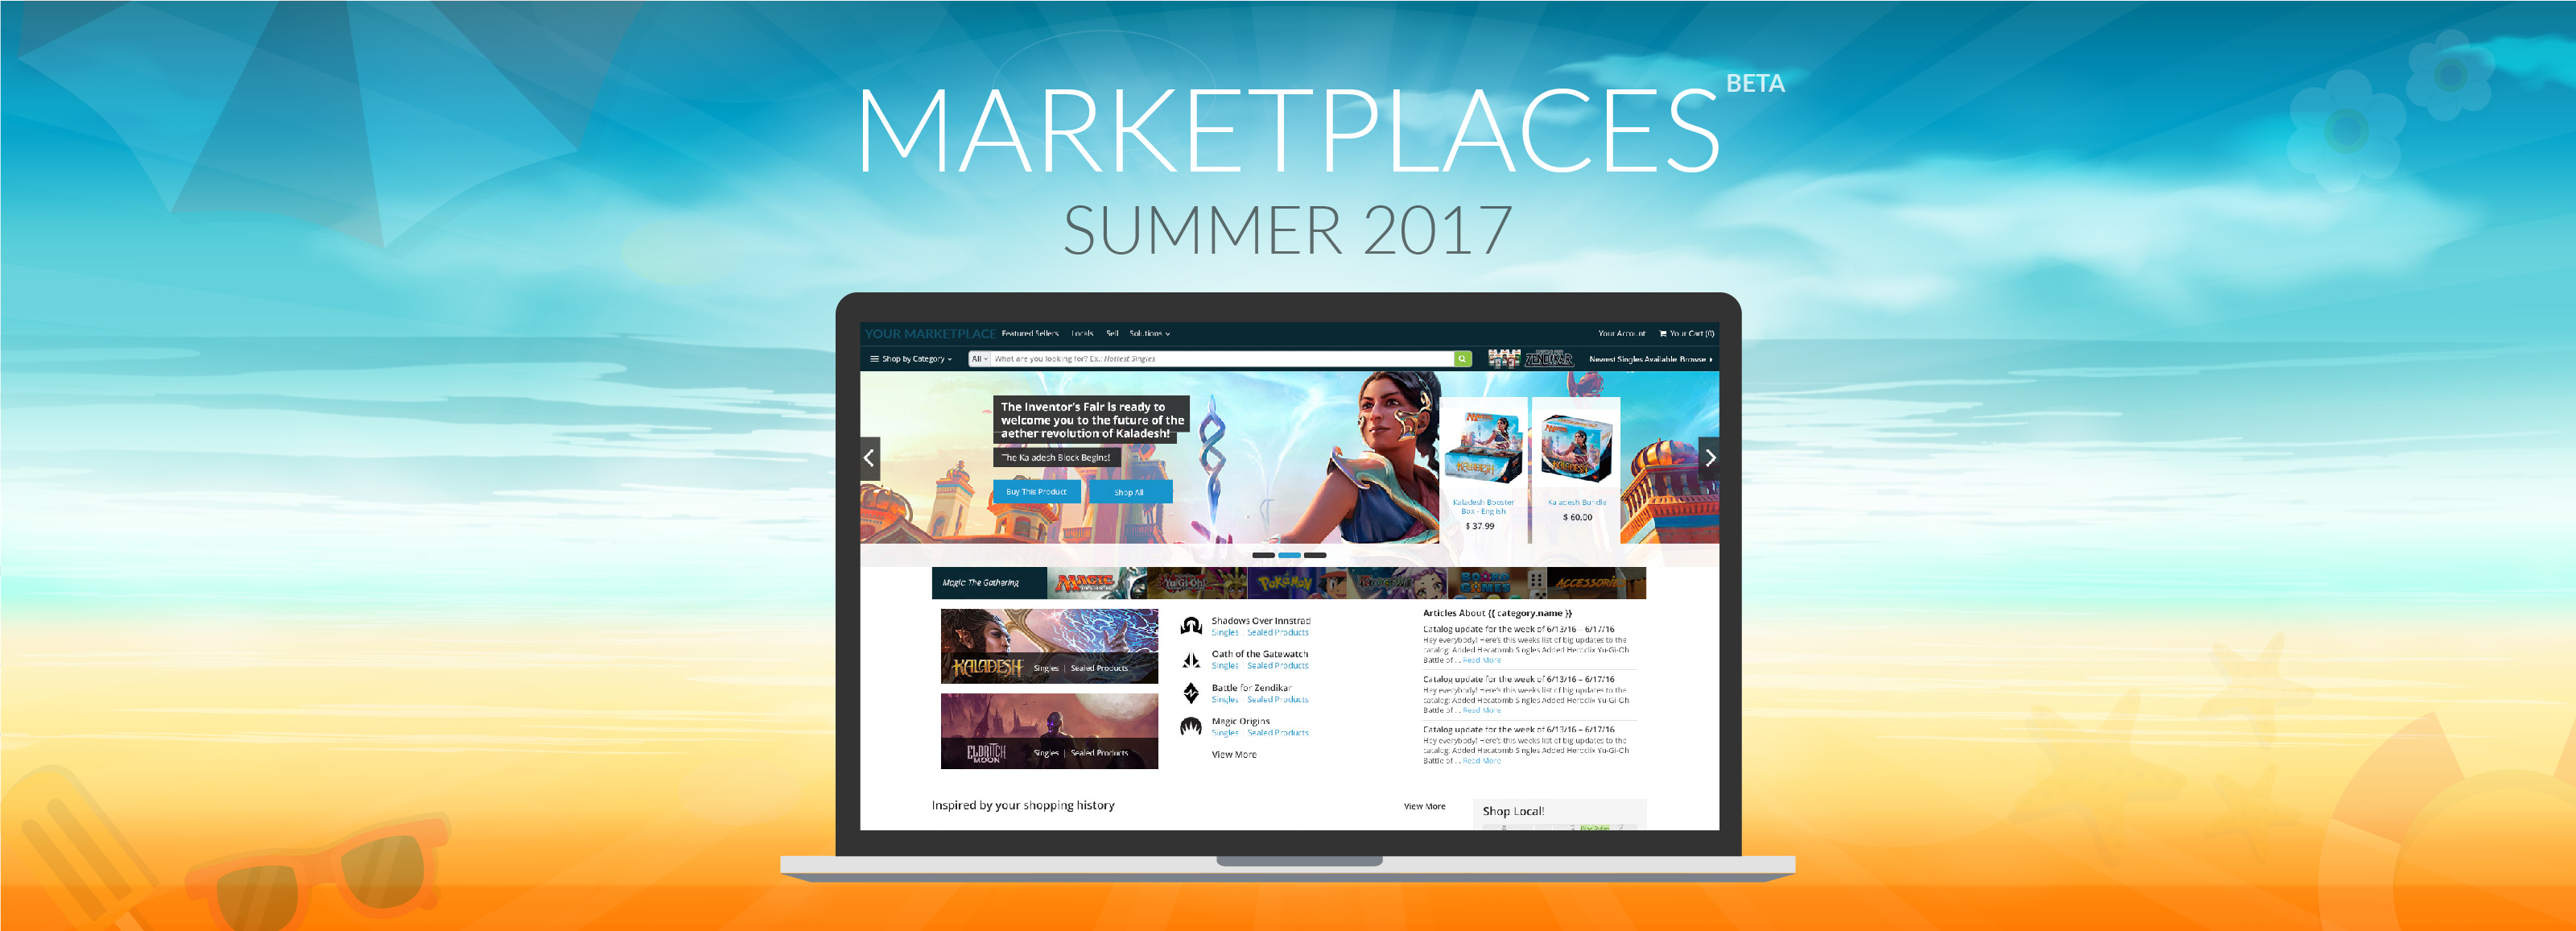 Game and Hobby Marketplaces Releases this Summer 2017